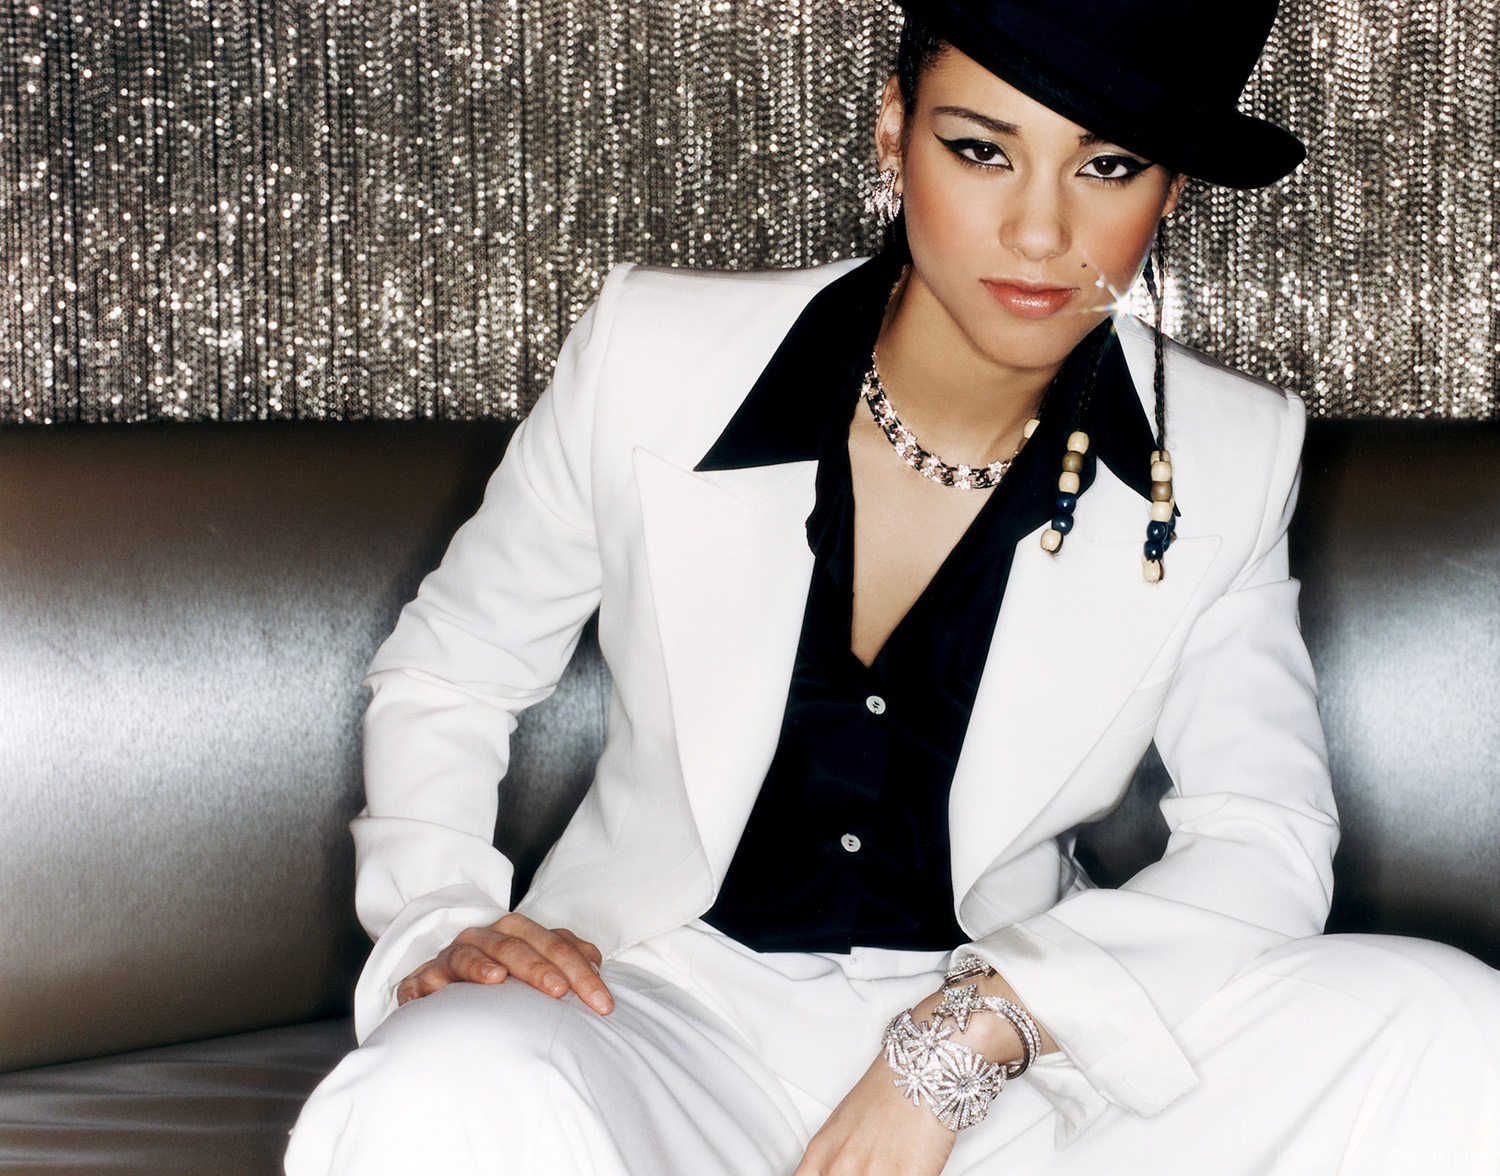 ALICIA-KEYS-Photography-by-Indira-Cesarine-002.jpg